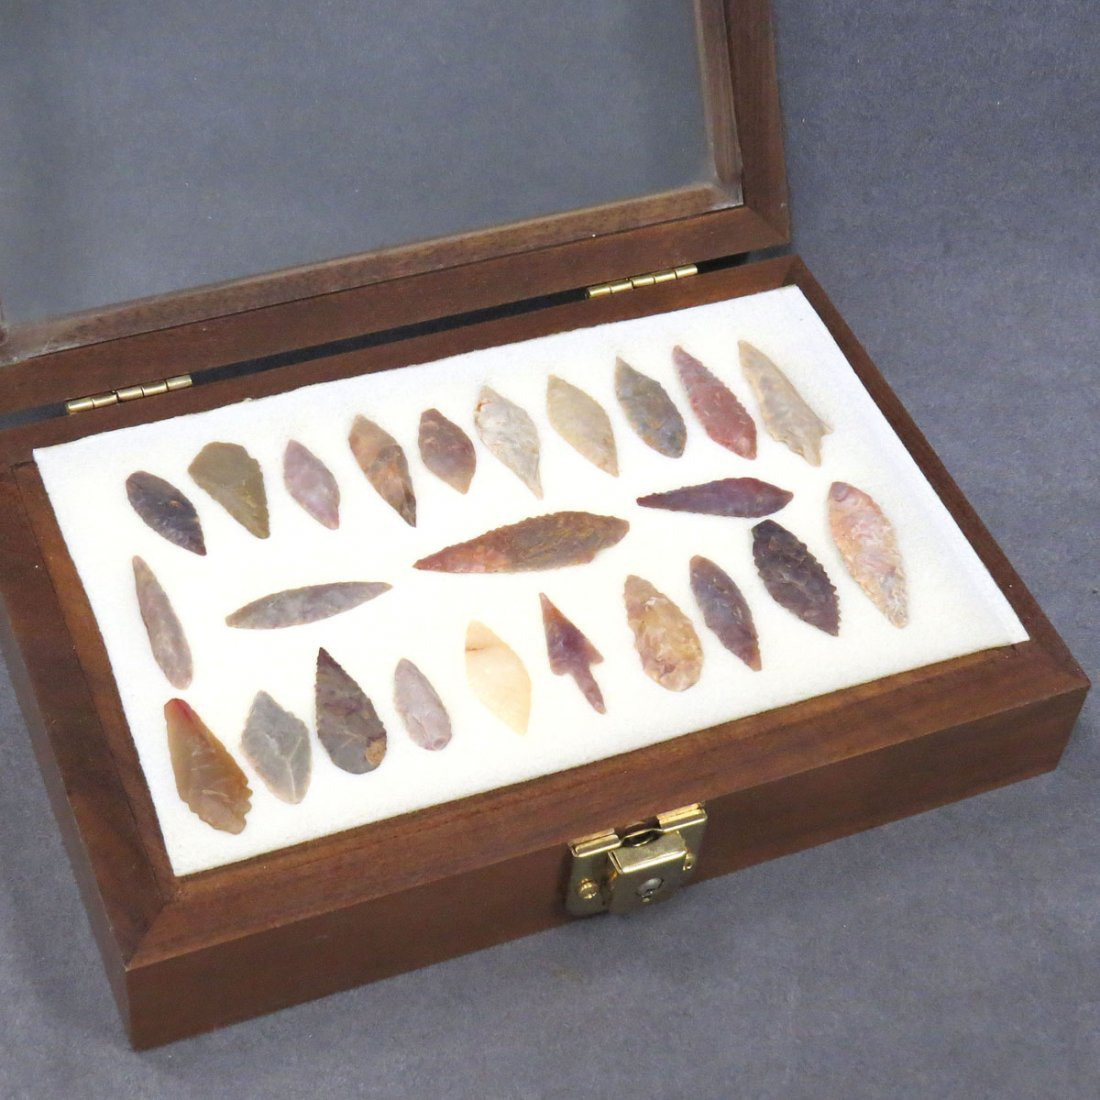 NATIVE AMERICAN COLLECTION (24) STONE BIRD POINTS